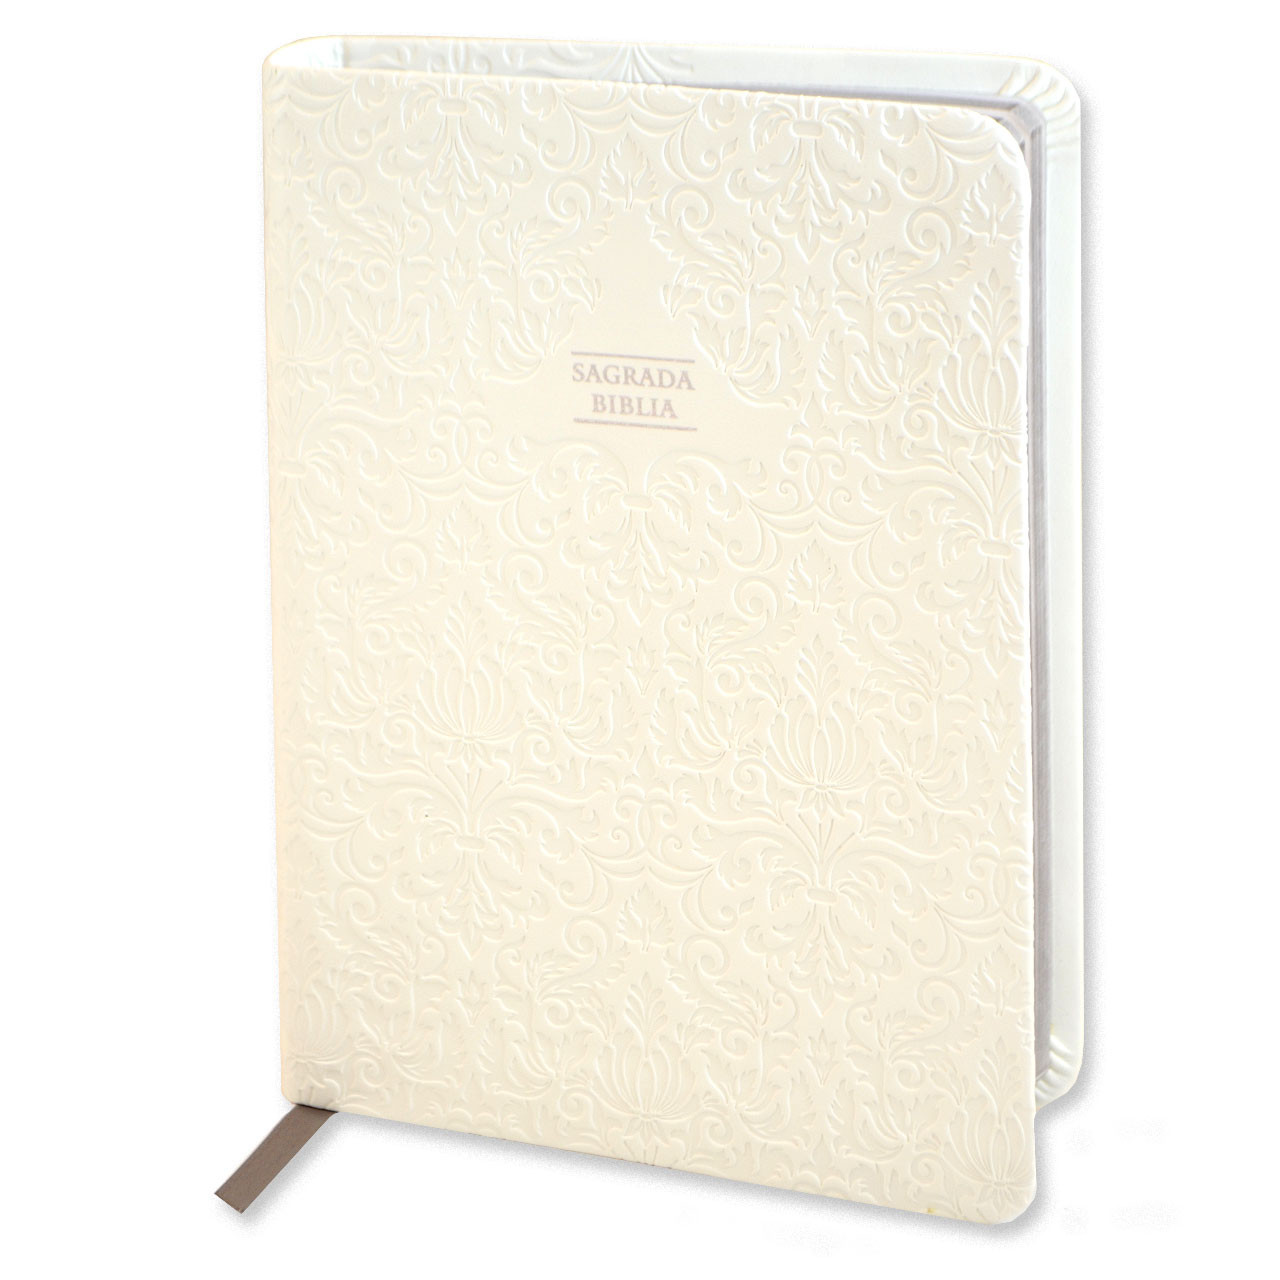 Sagrada Biblia with White Cover